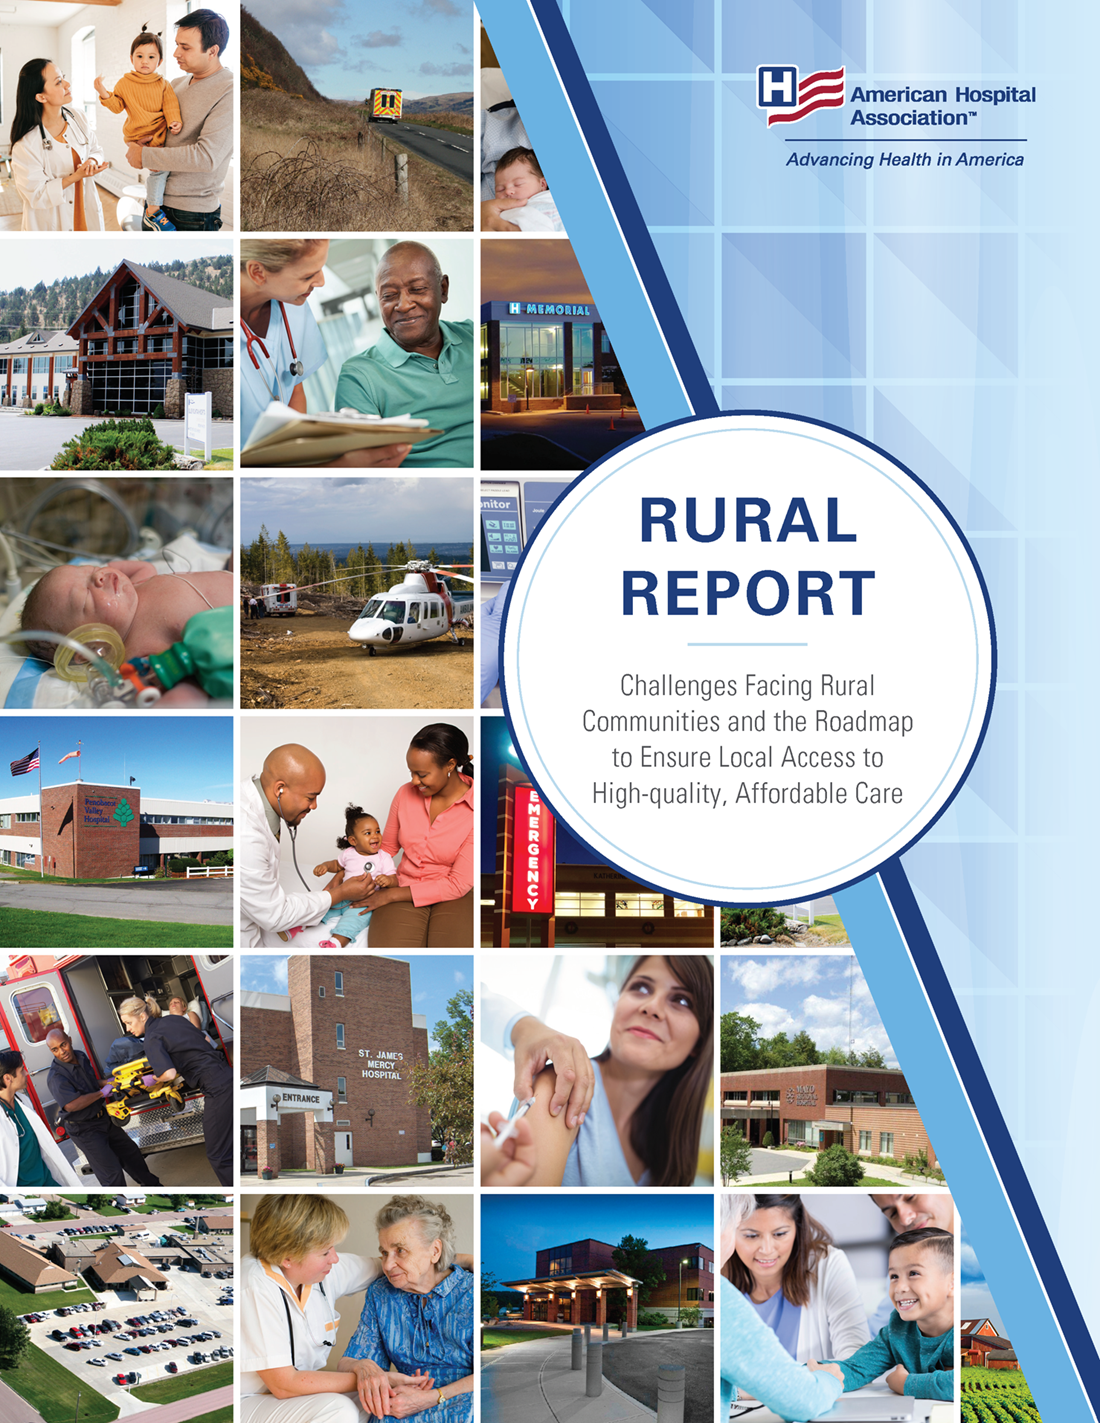 Rural Report Cover Image